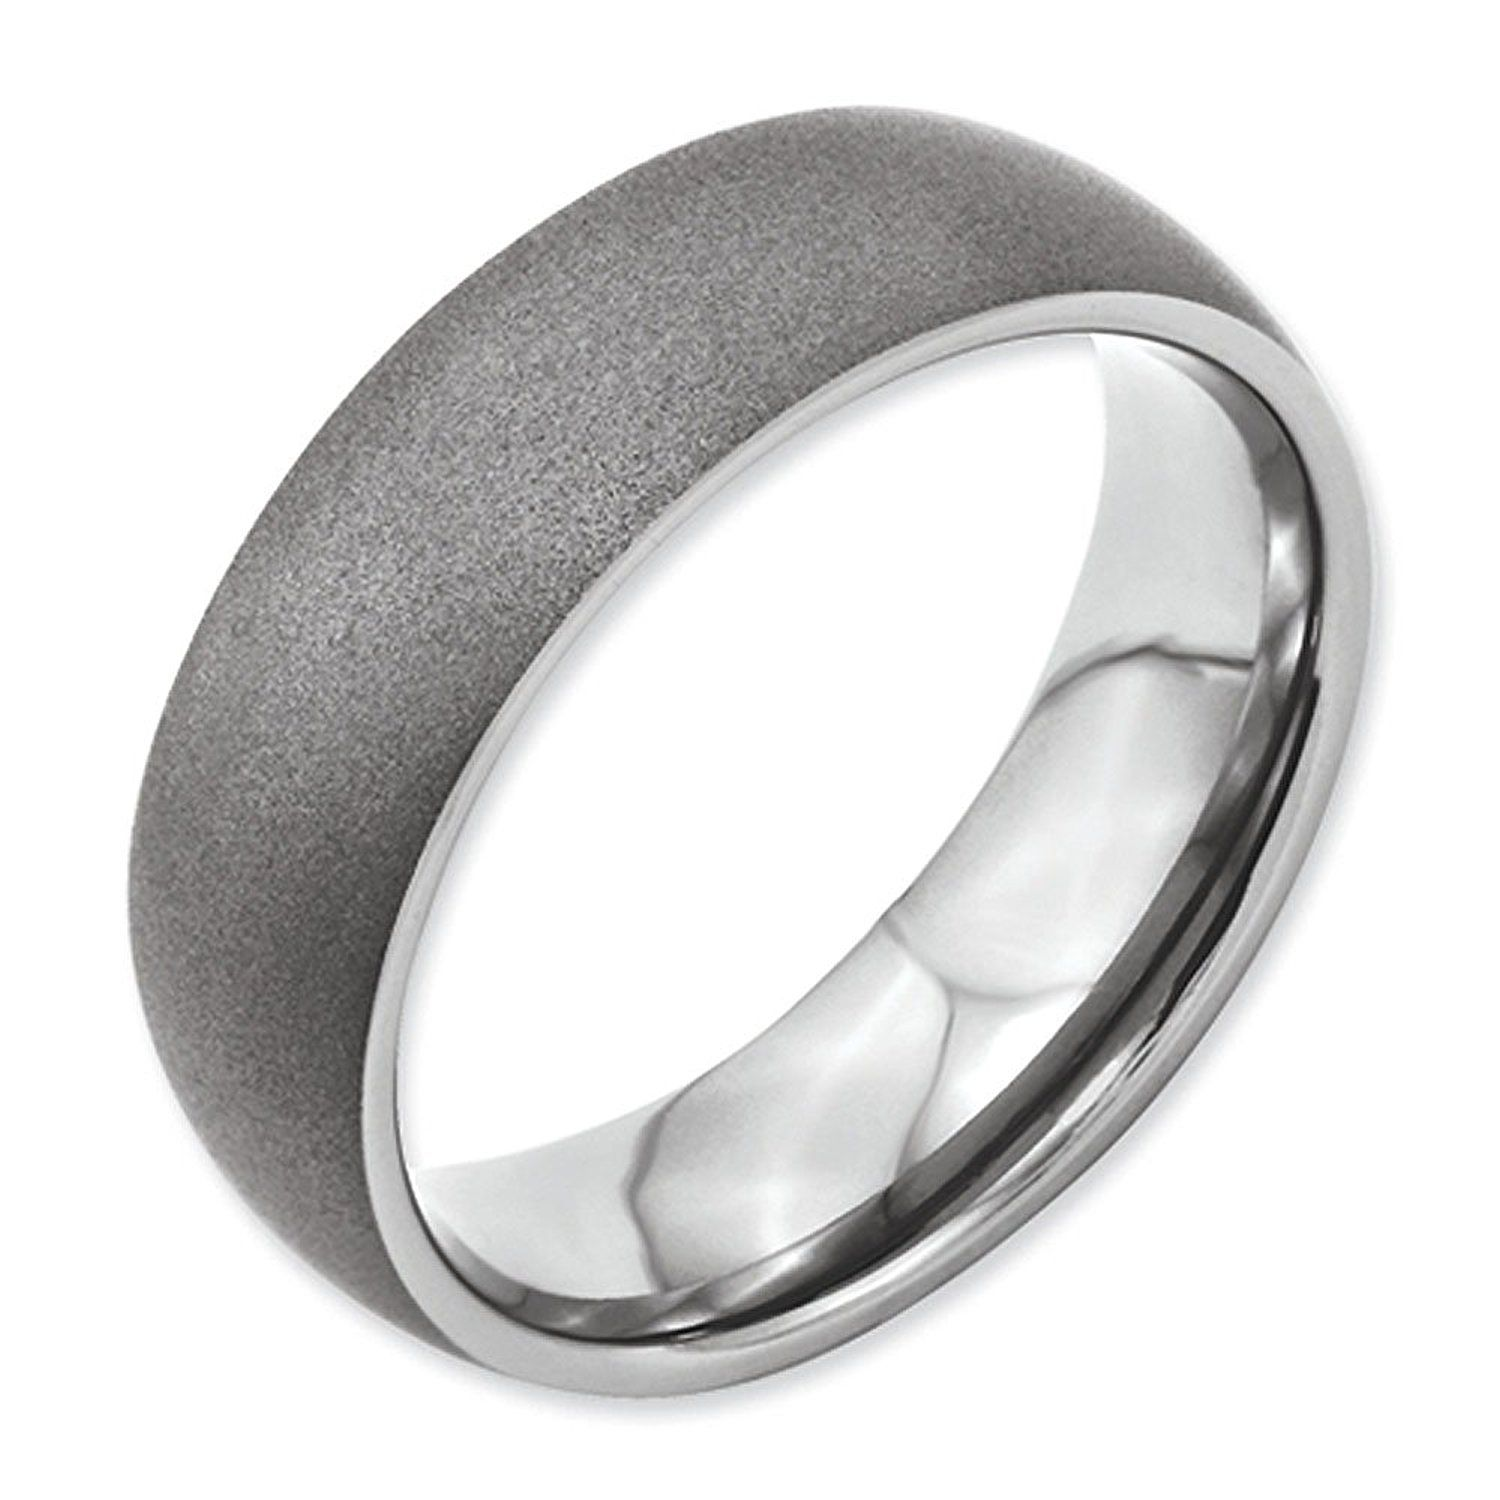 Chisel 7mm Stone Finish Anium Domed Contemporary Wedding Band Tried It Love